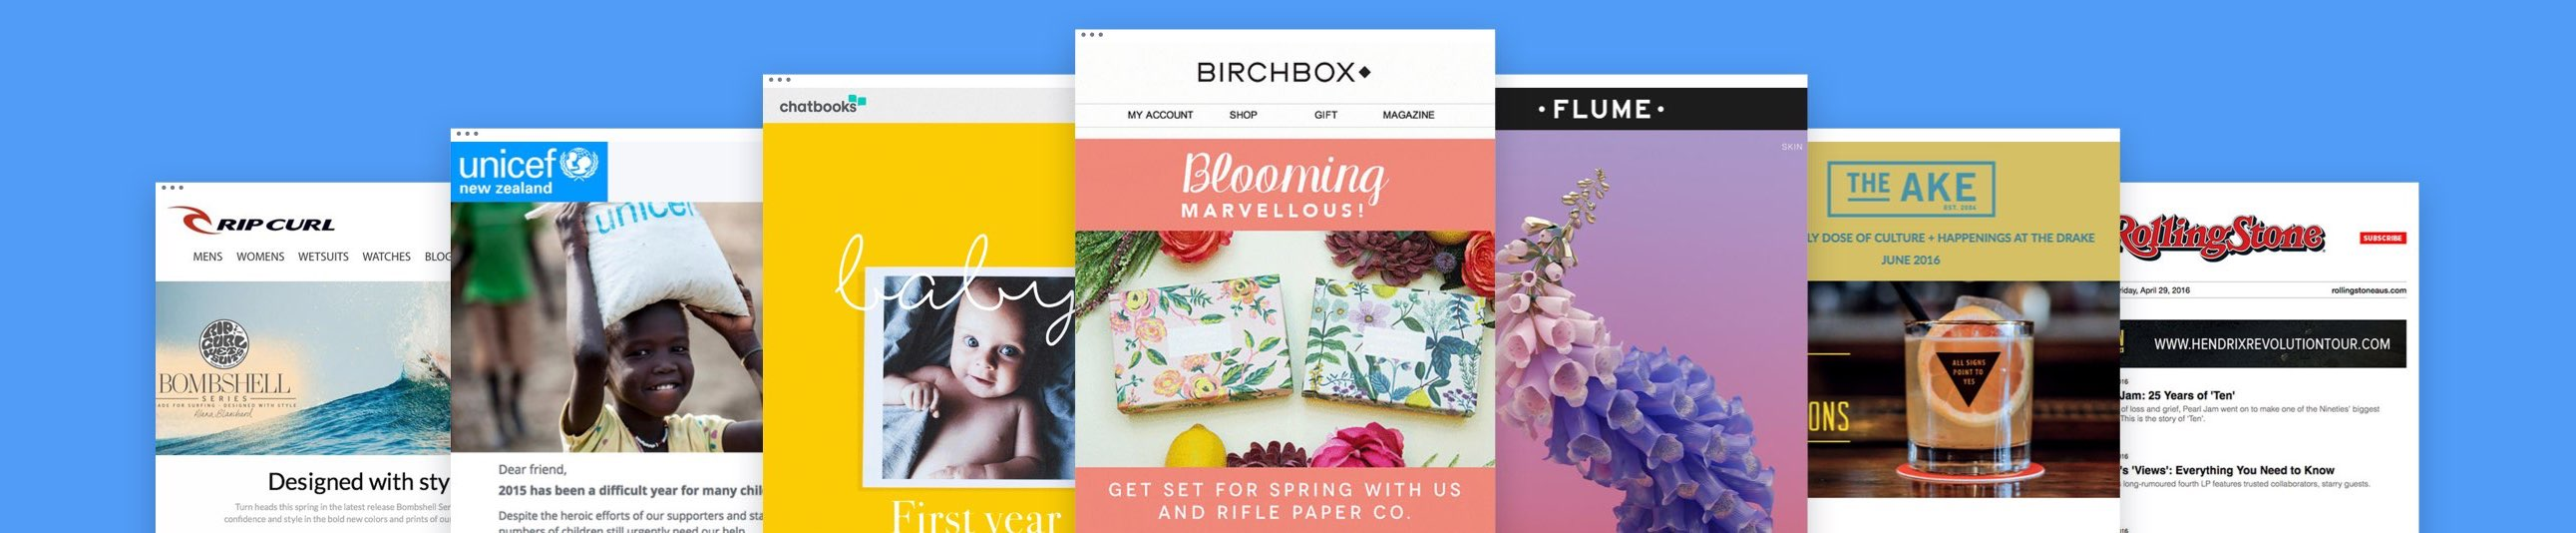 Email marketing examples - Birchbox, Flume, Chatbooks.